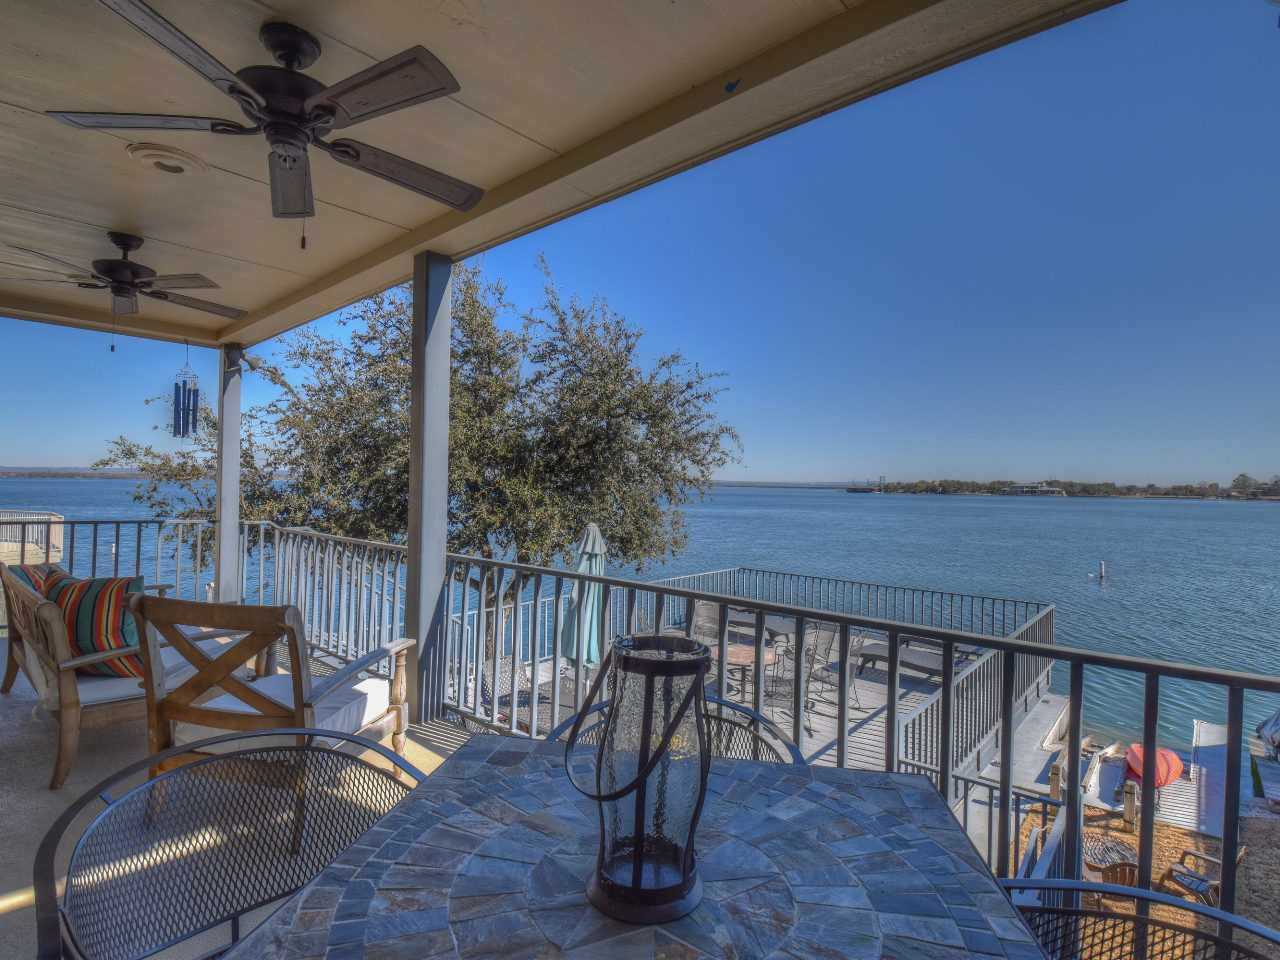 Townhouse for Sale at 613 Horseshoe Bay North Blvd 613 Horseshoe Bay North Blvd Horseshoe Bay, Texas 78657 United States